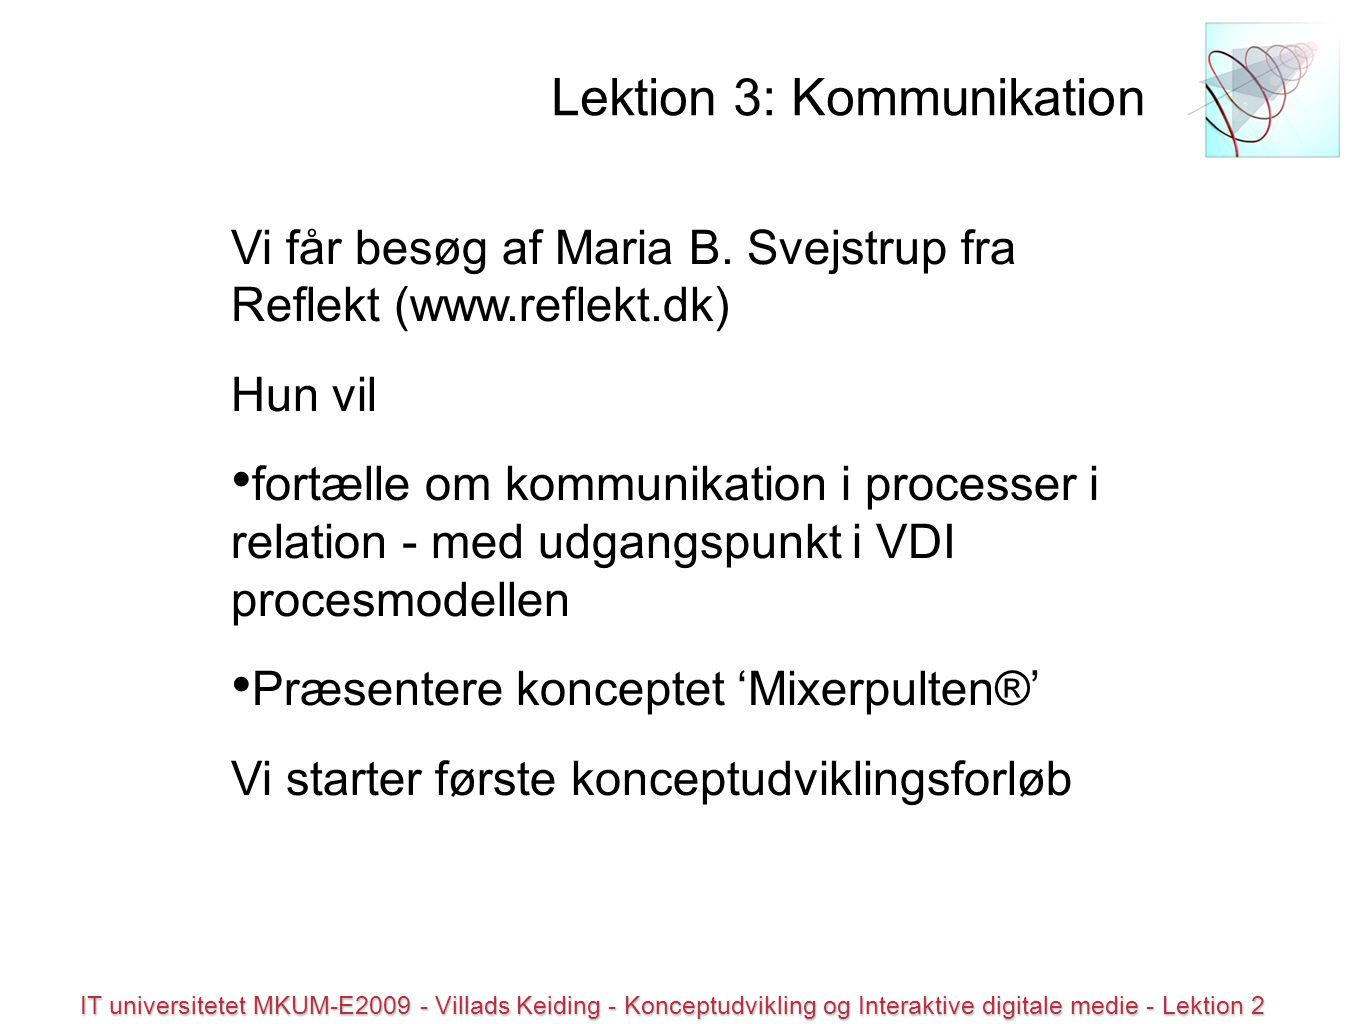 © all rights reserved IT universitetet MKUM-E2009 - Villads Keiding - Konceptudvikling og Interaktive digitale medie - Lektion 2 Lektion 3: Kommunikation Vi får besøg af Maria B.